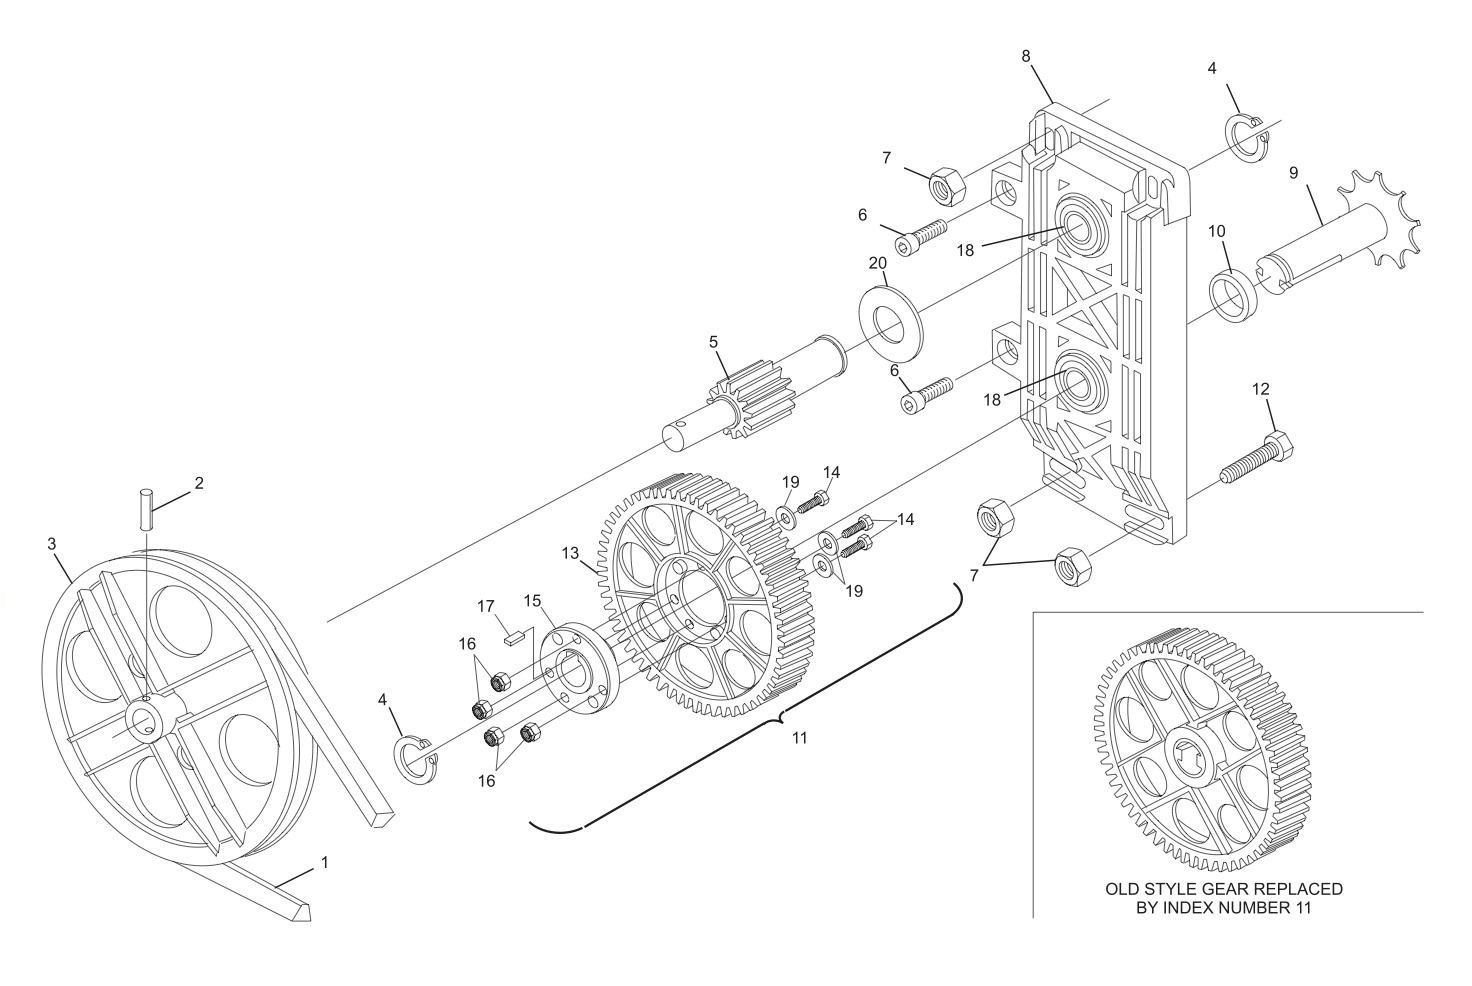 Table Gear, Sweep Gear and Pulley Drive Assembly